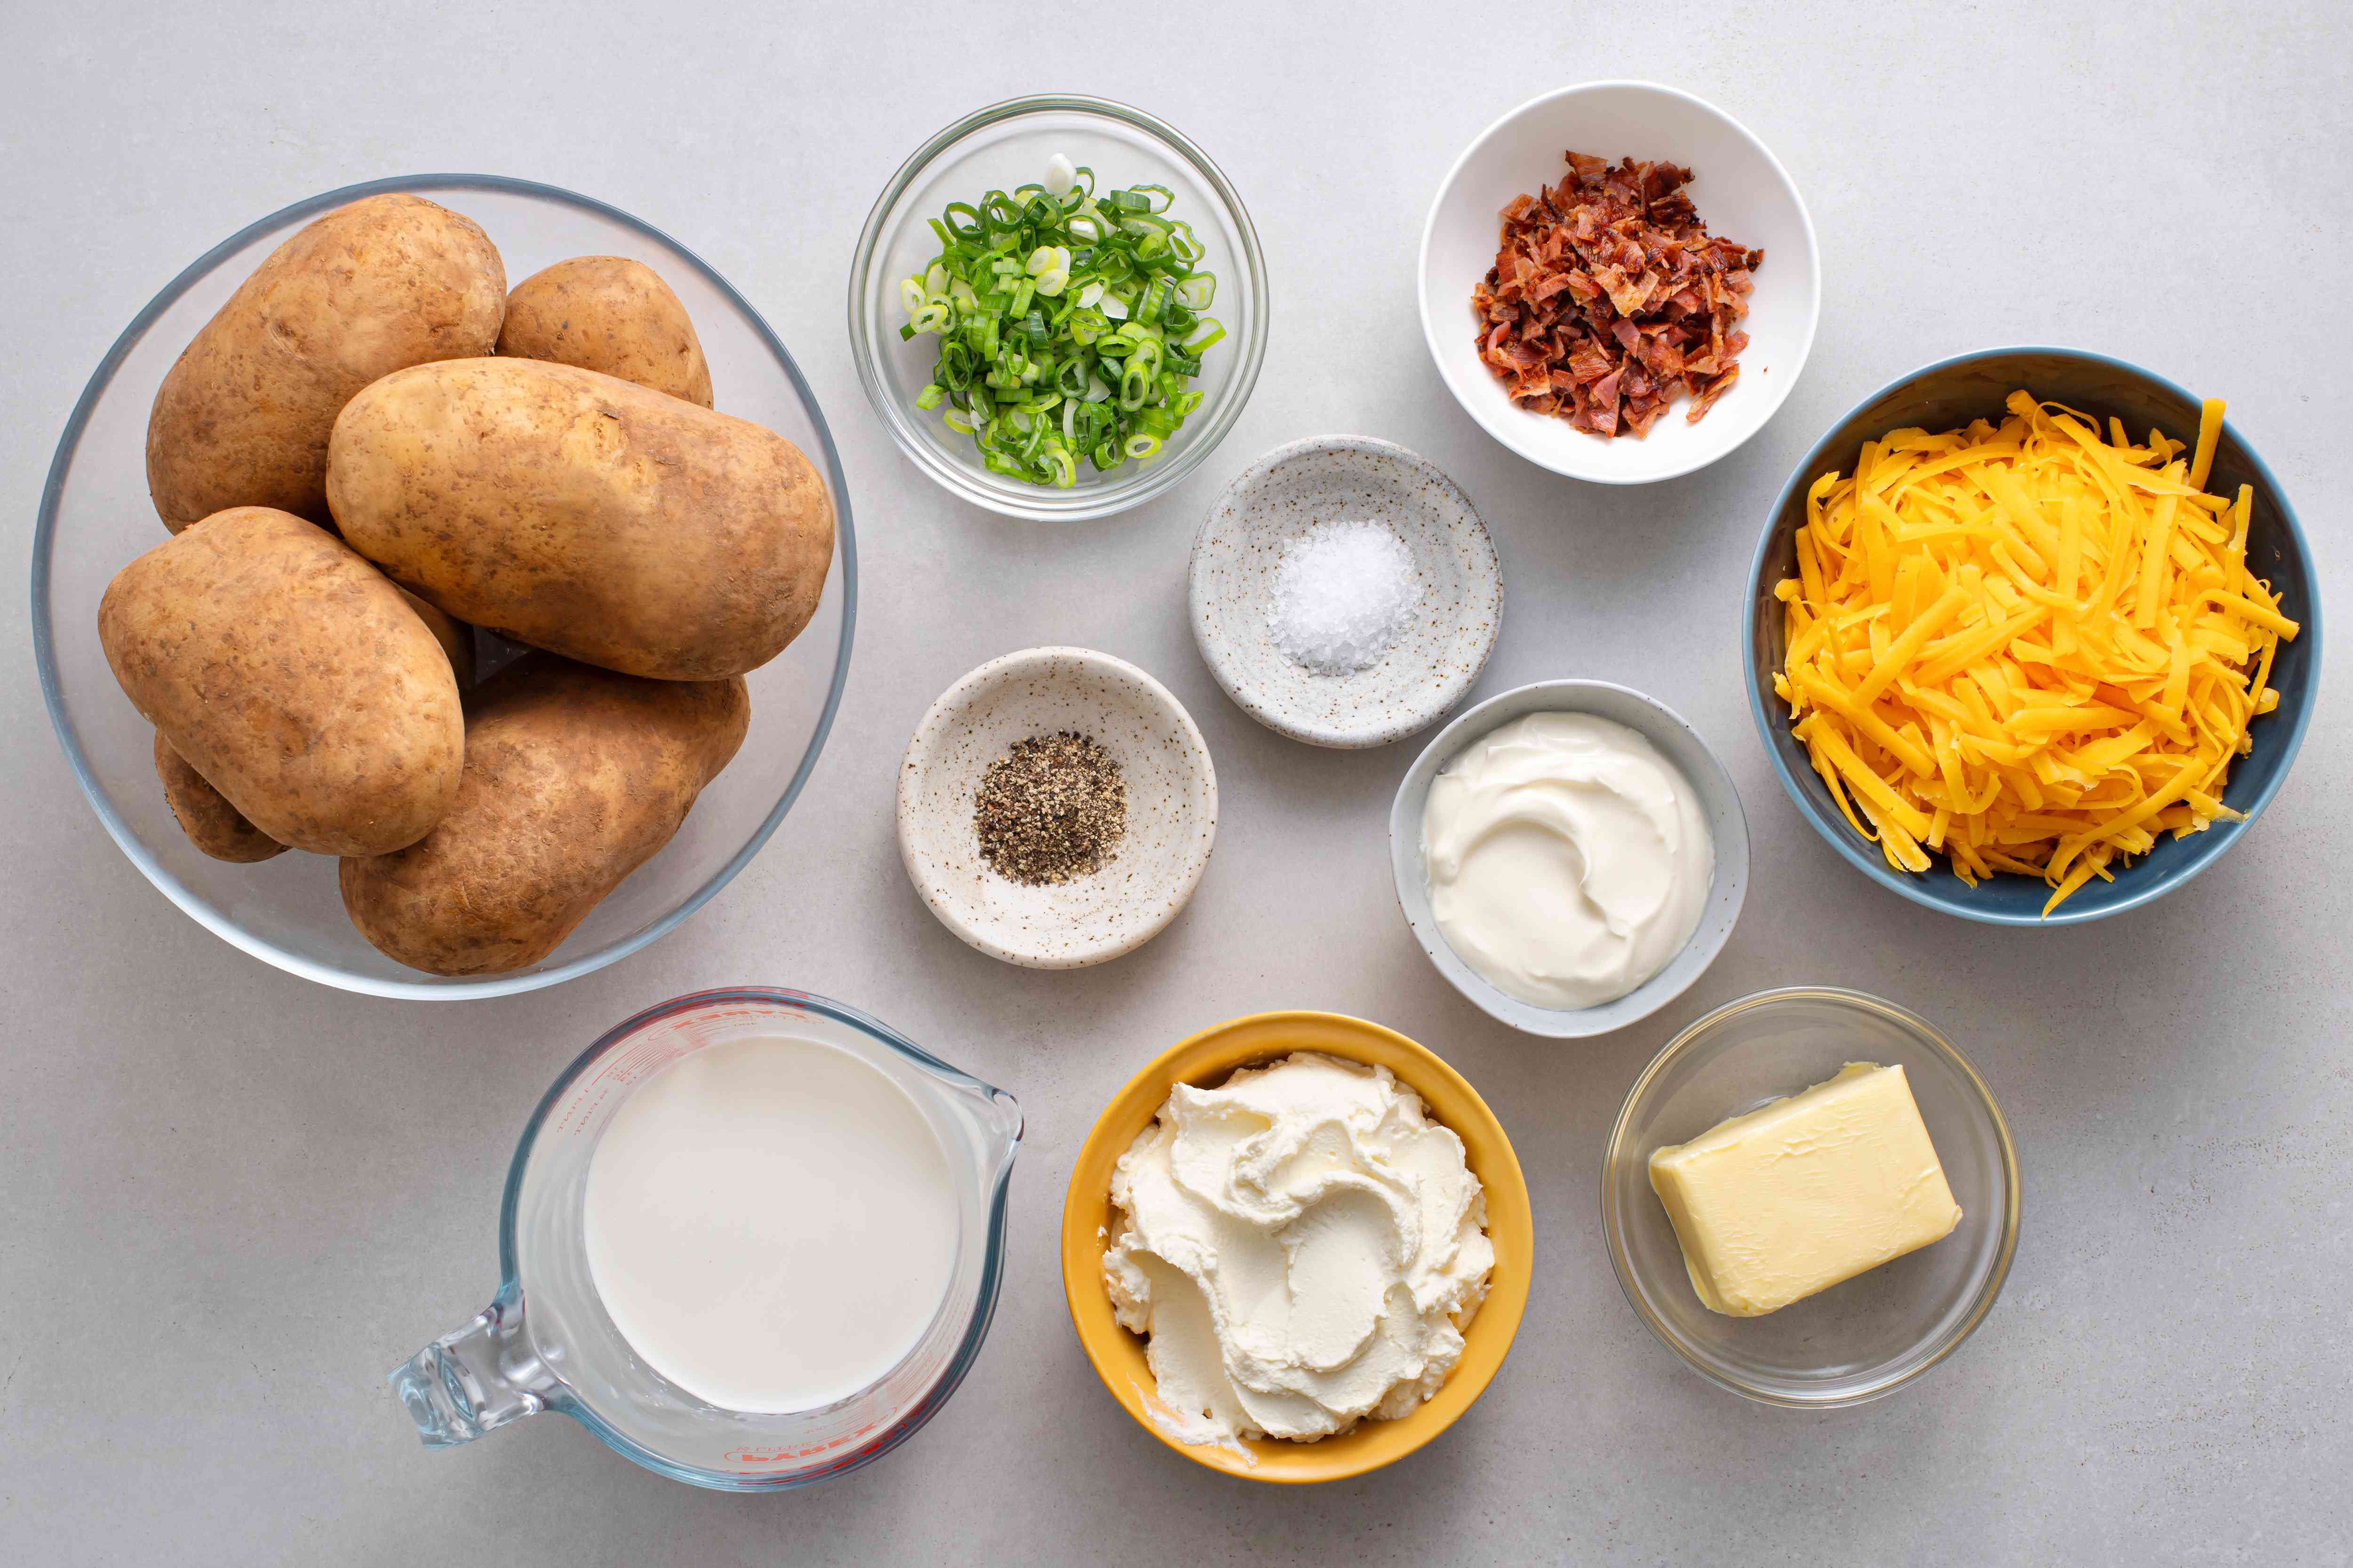 Loaded Smashed Potatoes ingredients